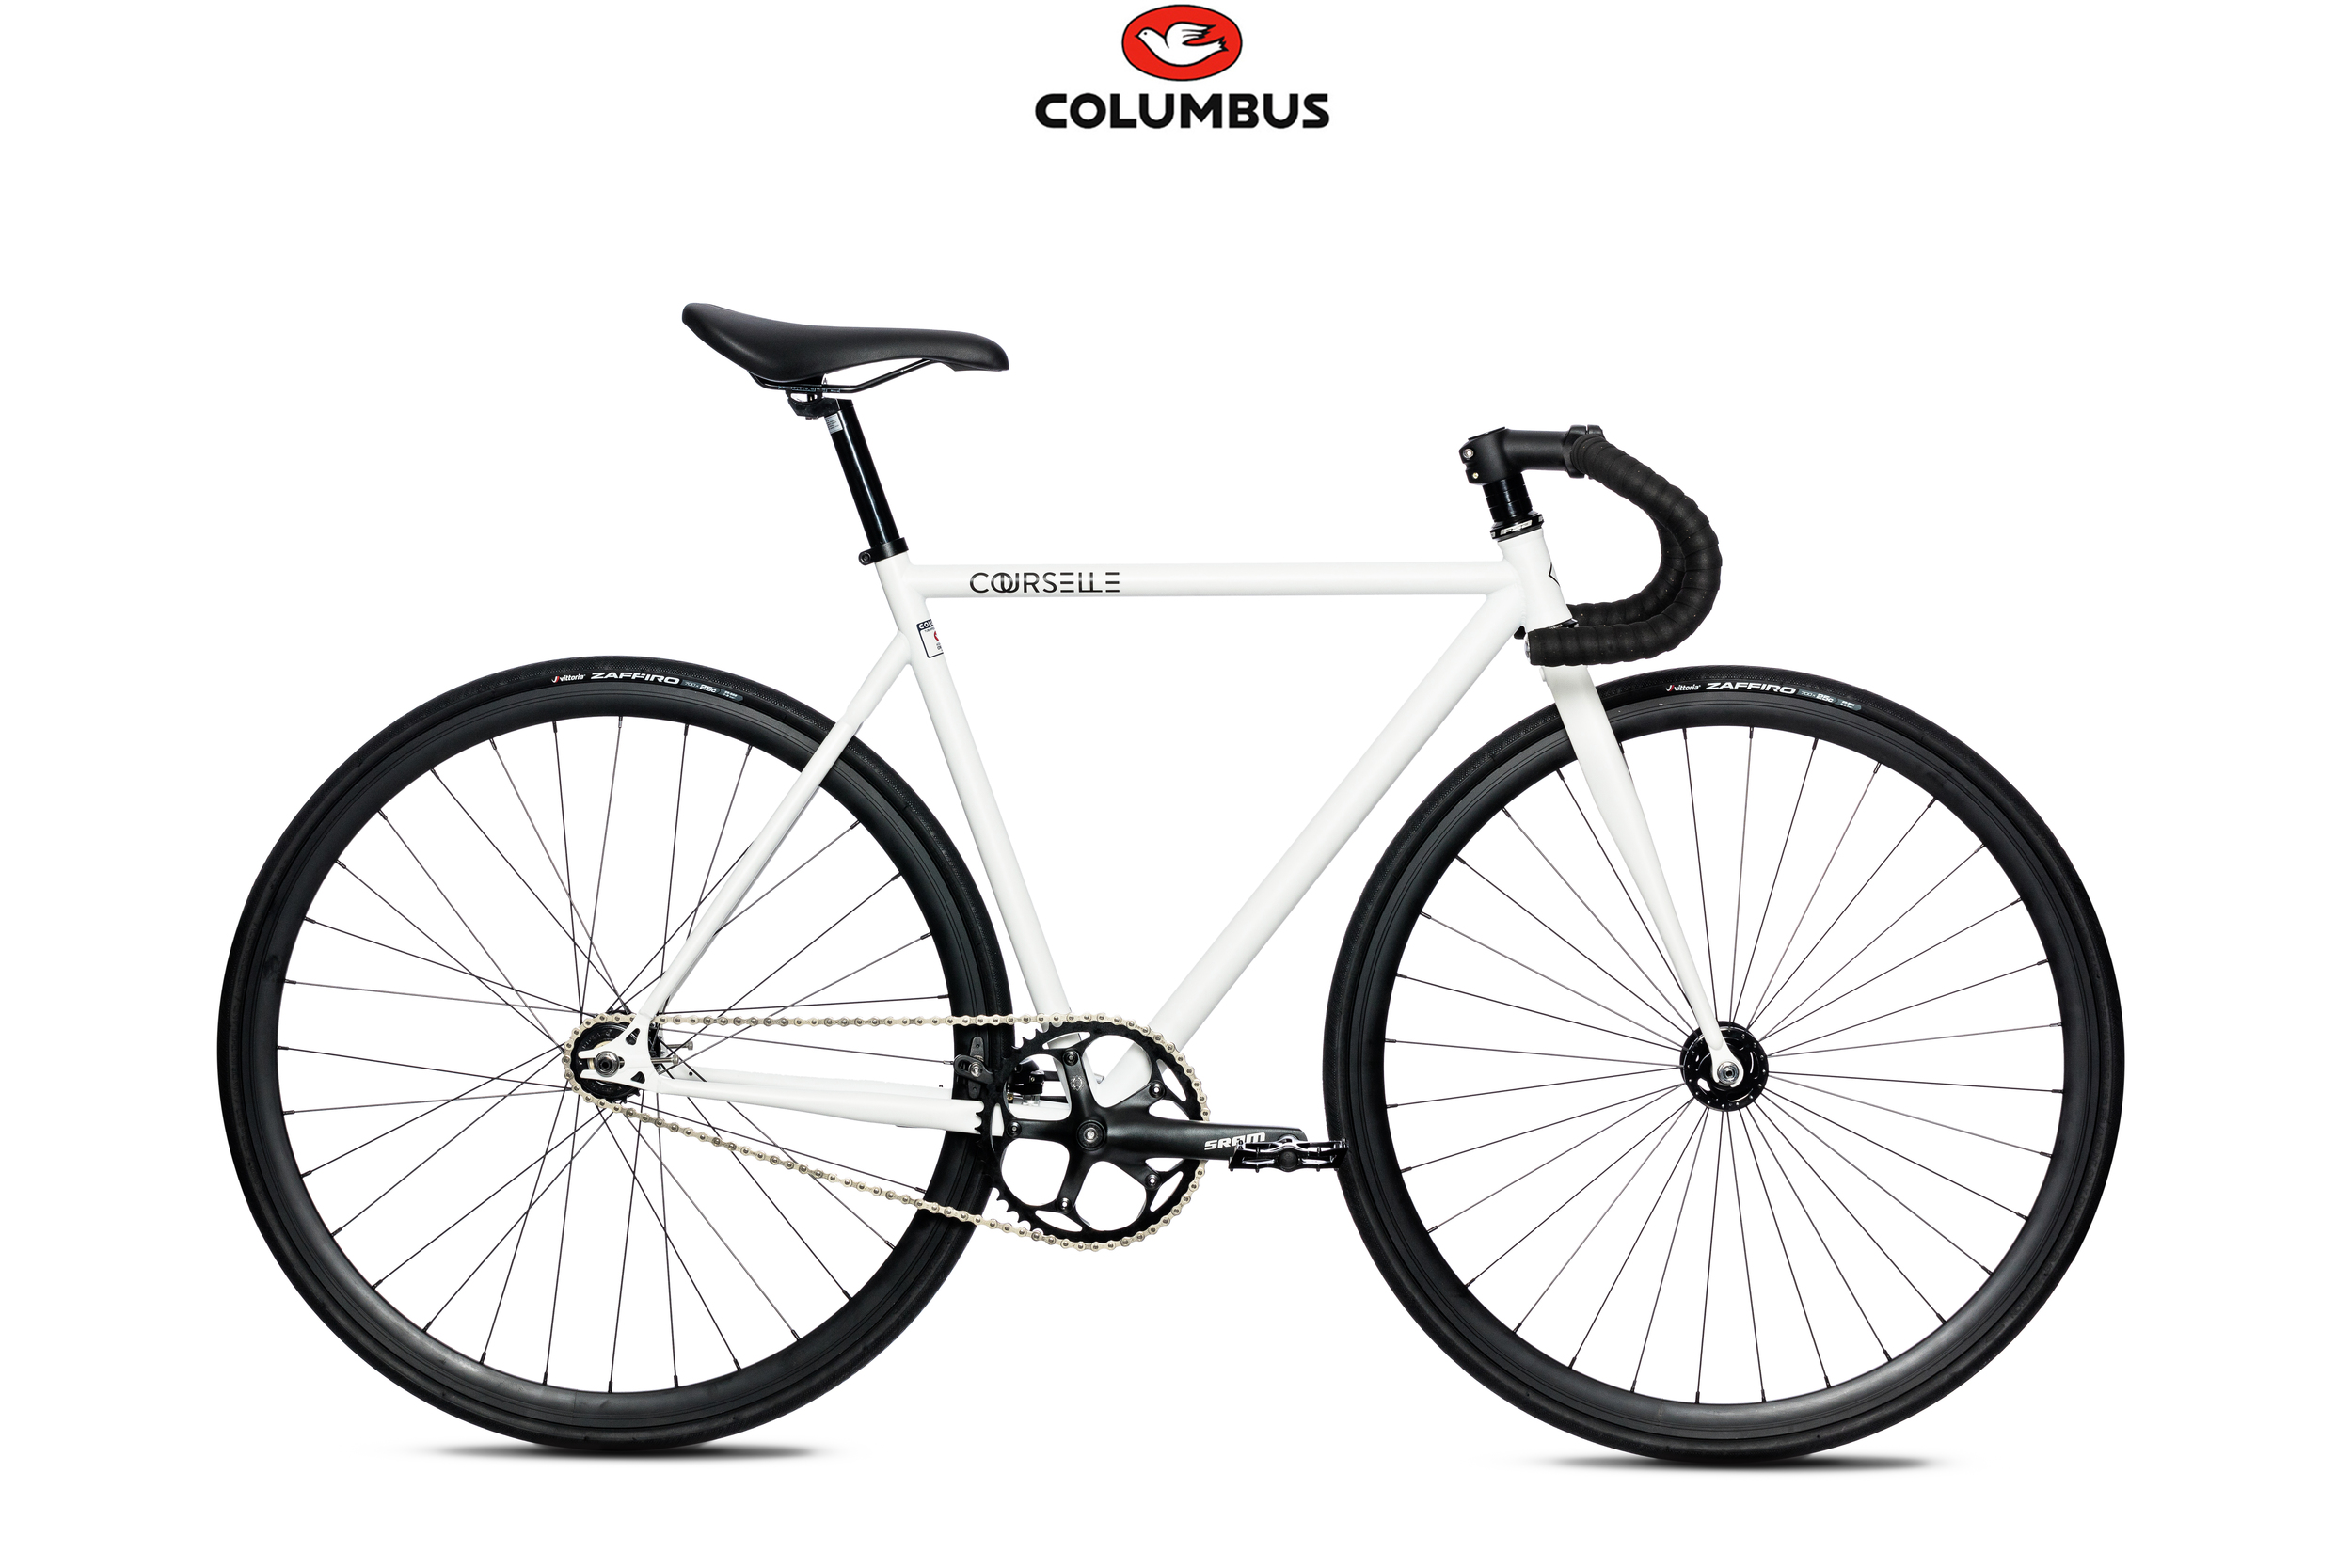 CourselleCycle_Ecom2016_16_C2.jpg